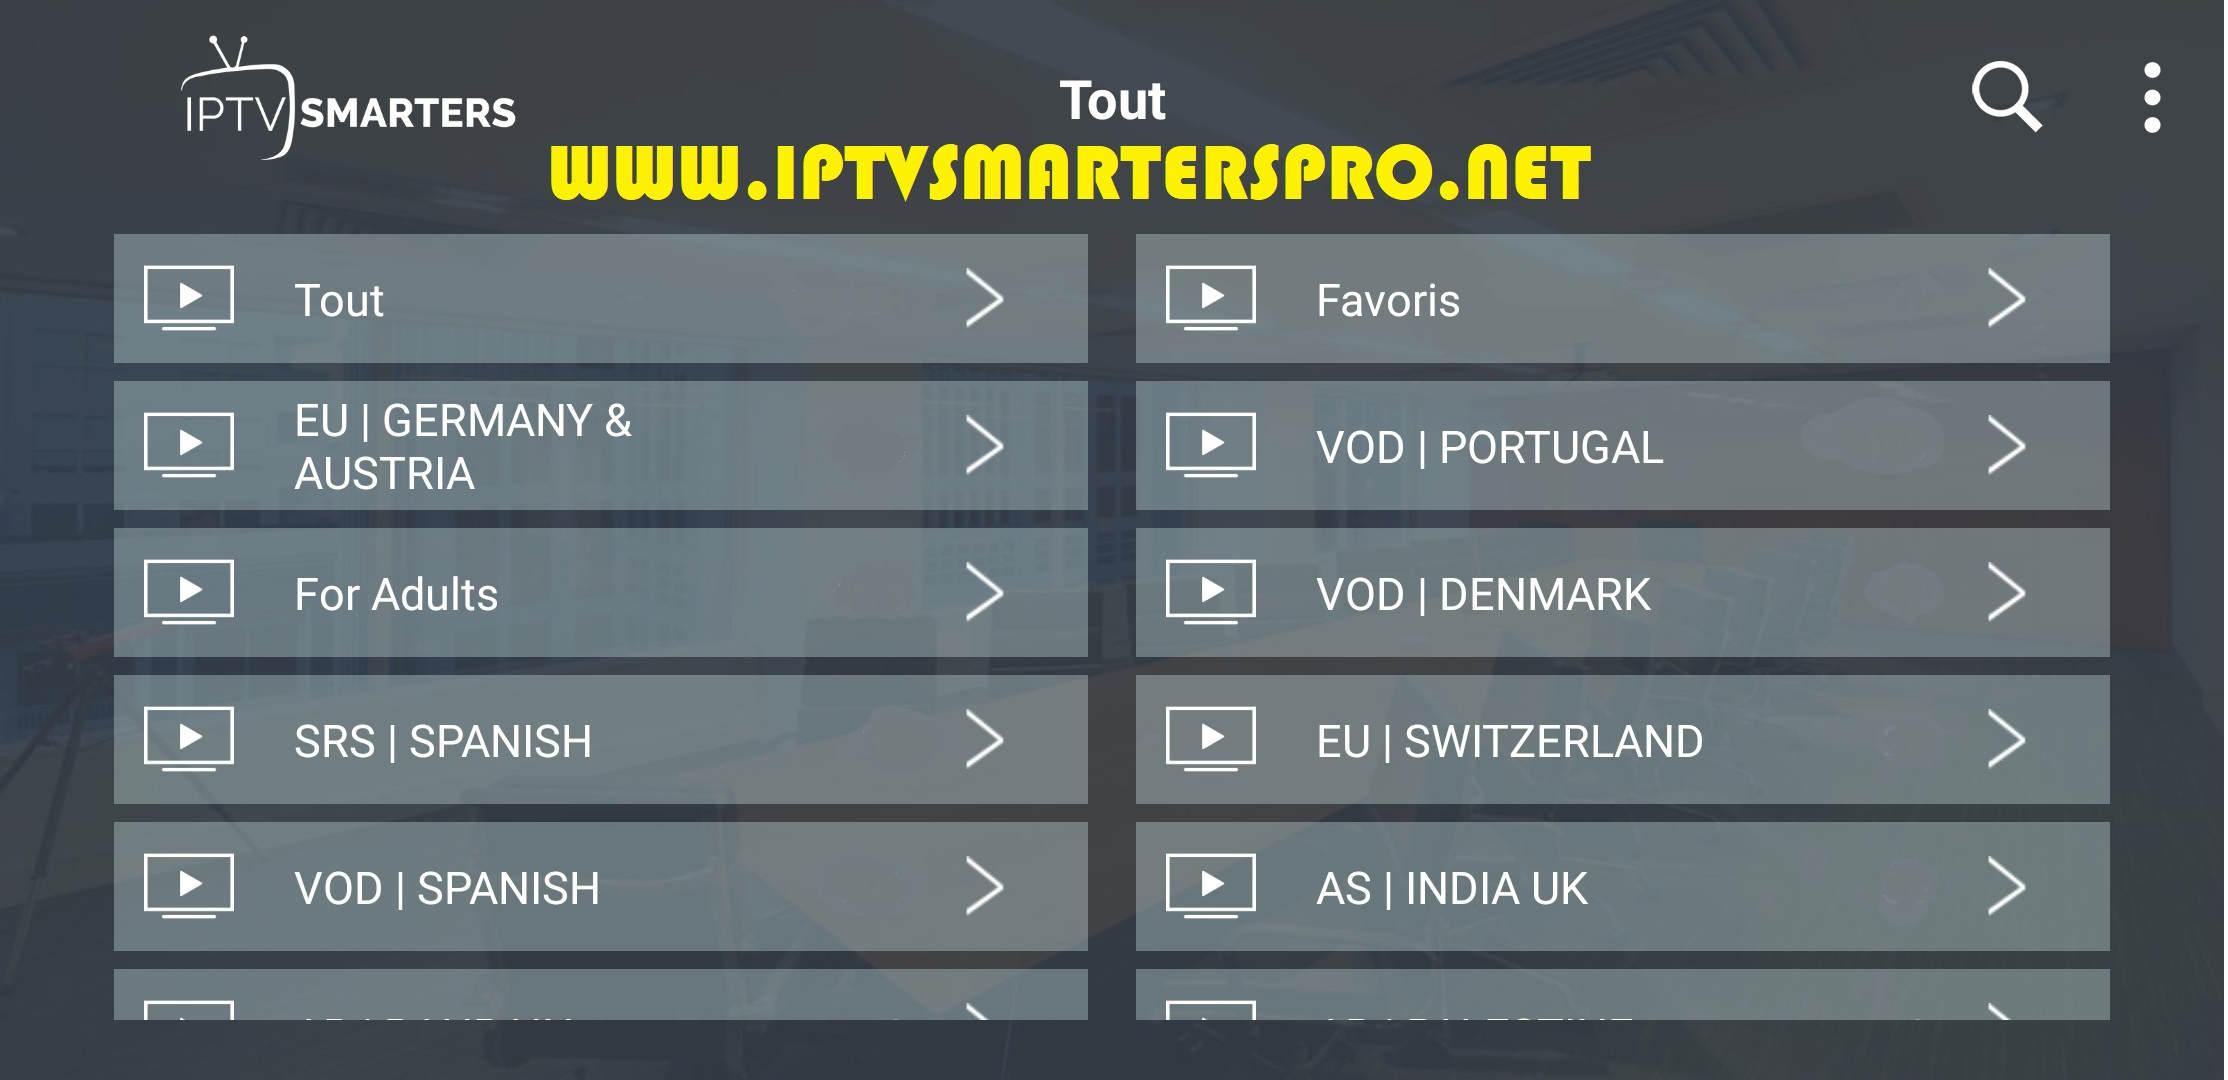 THE BEST SUBSCRIPTIONS IPTV FOR IPTV SMARTERS PRO 2021